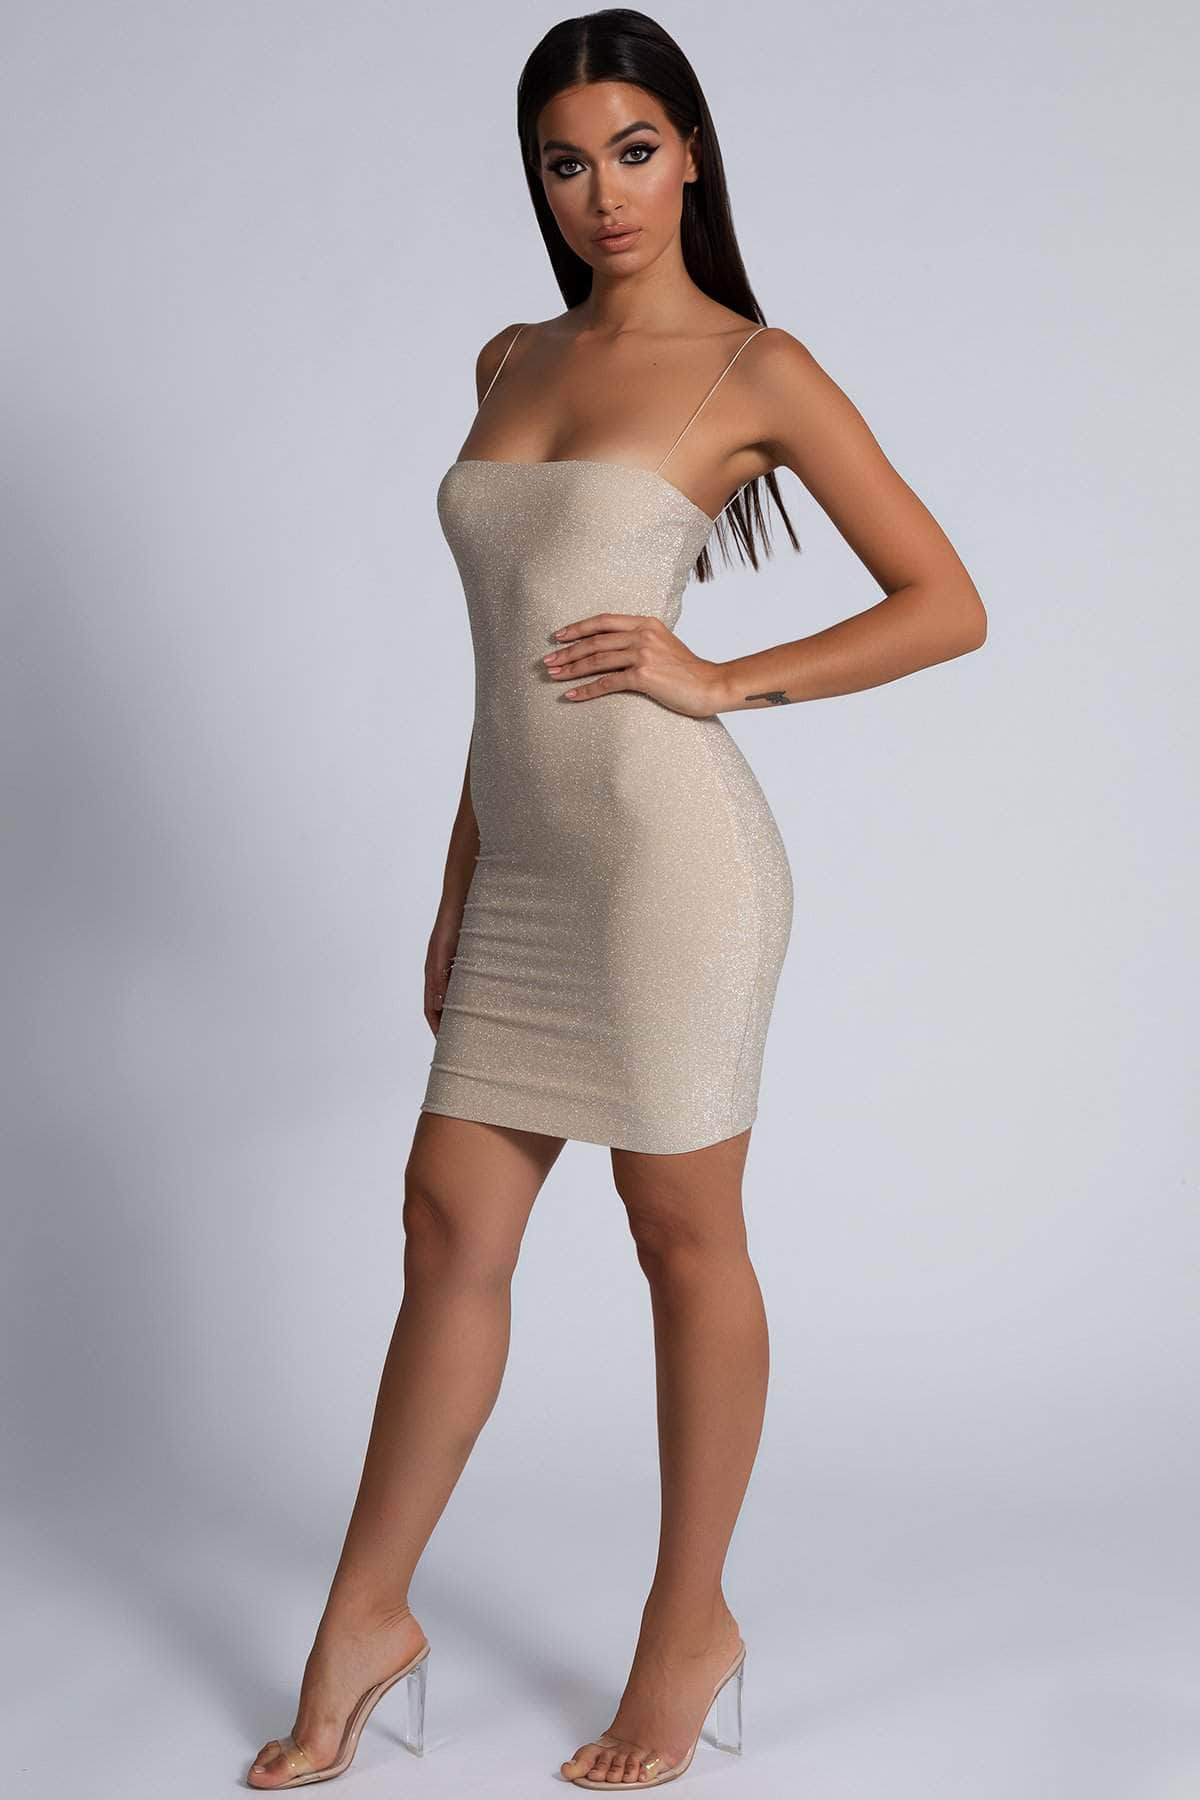 Mia Thin Strap Shimmer Mini Dress - Gold - MESHKI